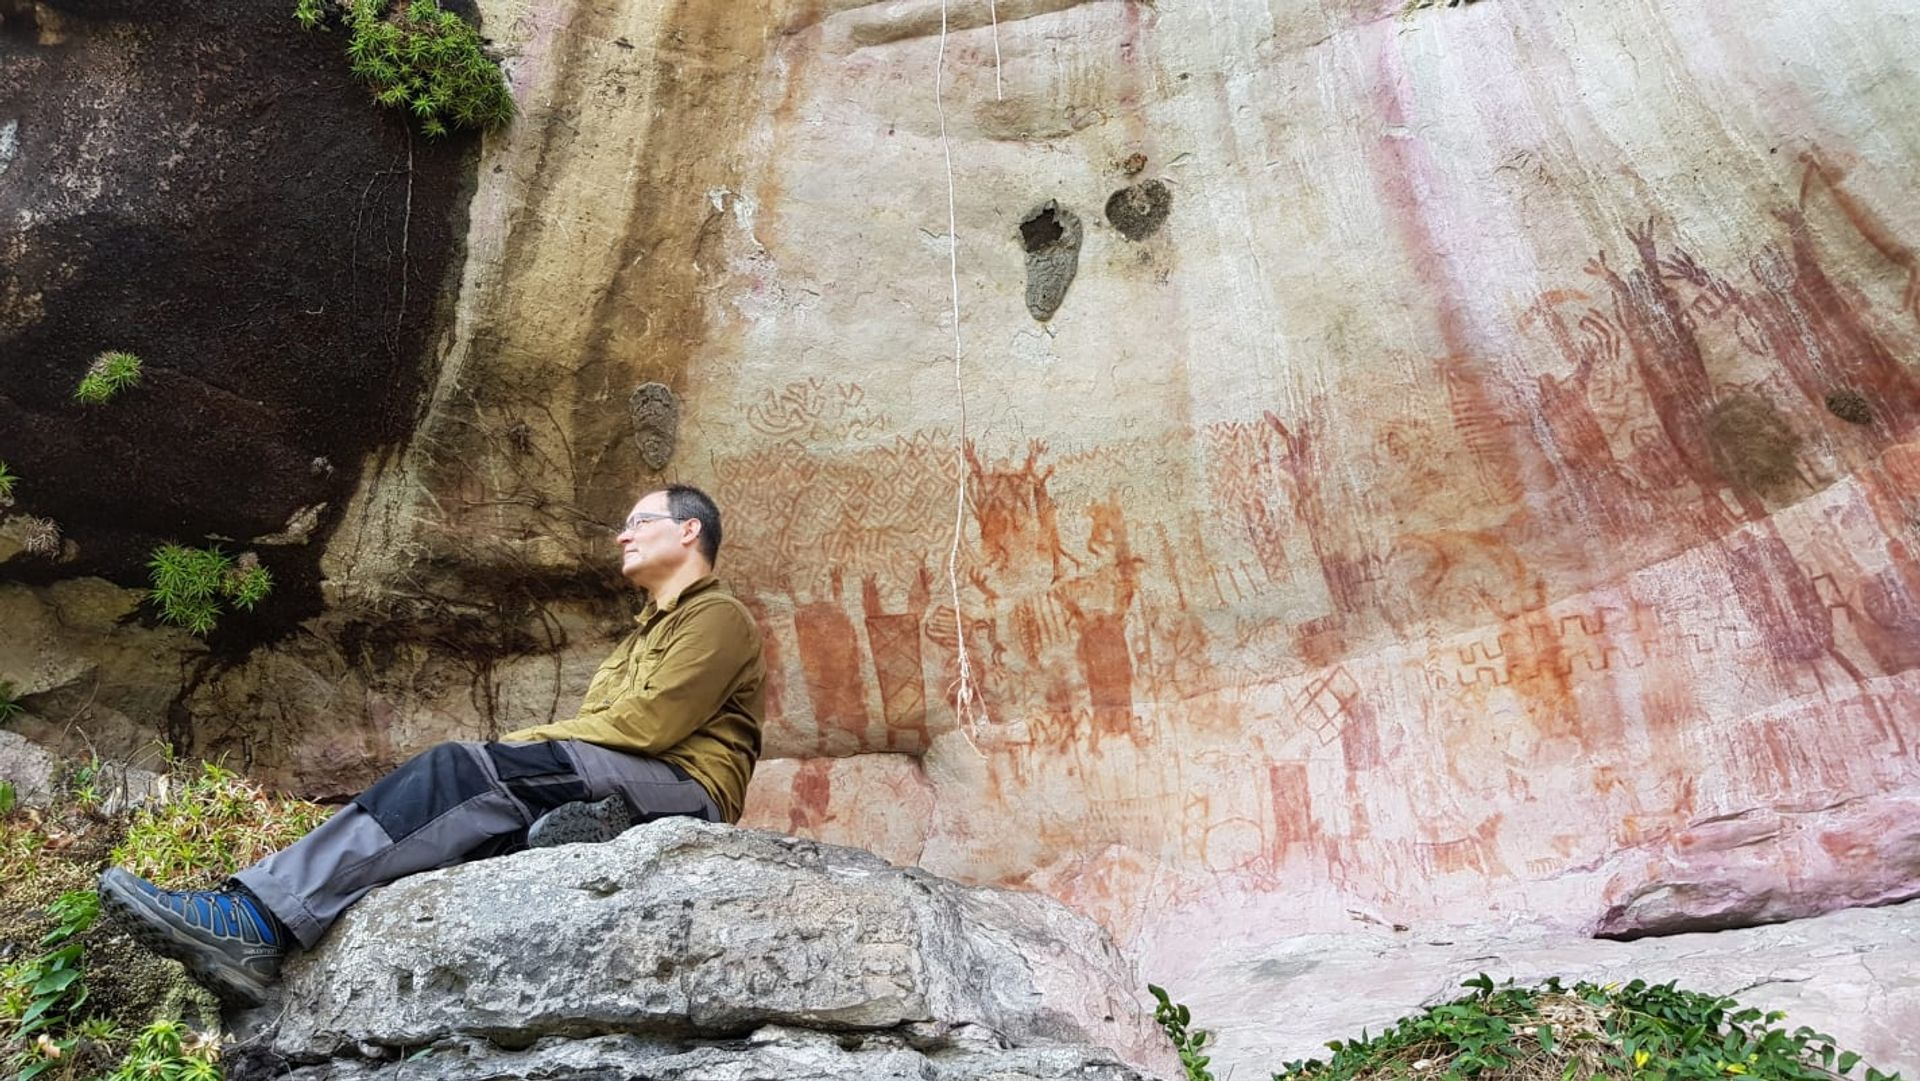 José Iriarte, professor of Archaeology at Exeter, at a rock art wall depicting mastadons in the Amazon rainforest Credit: José Iriarte